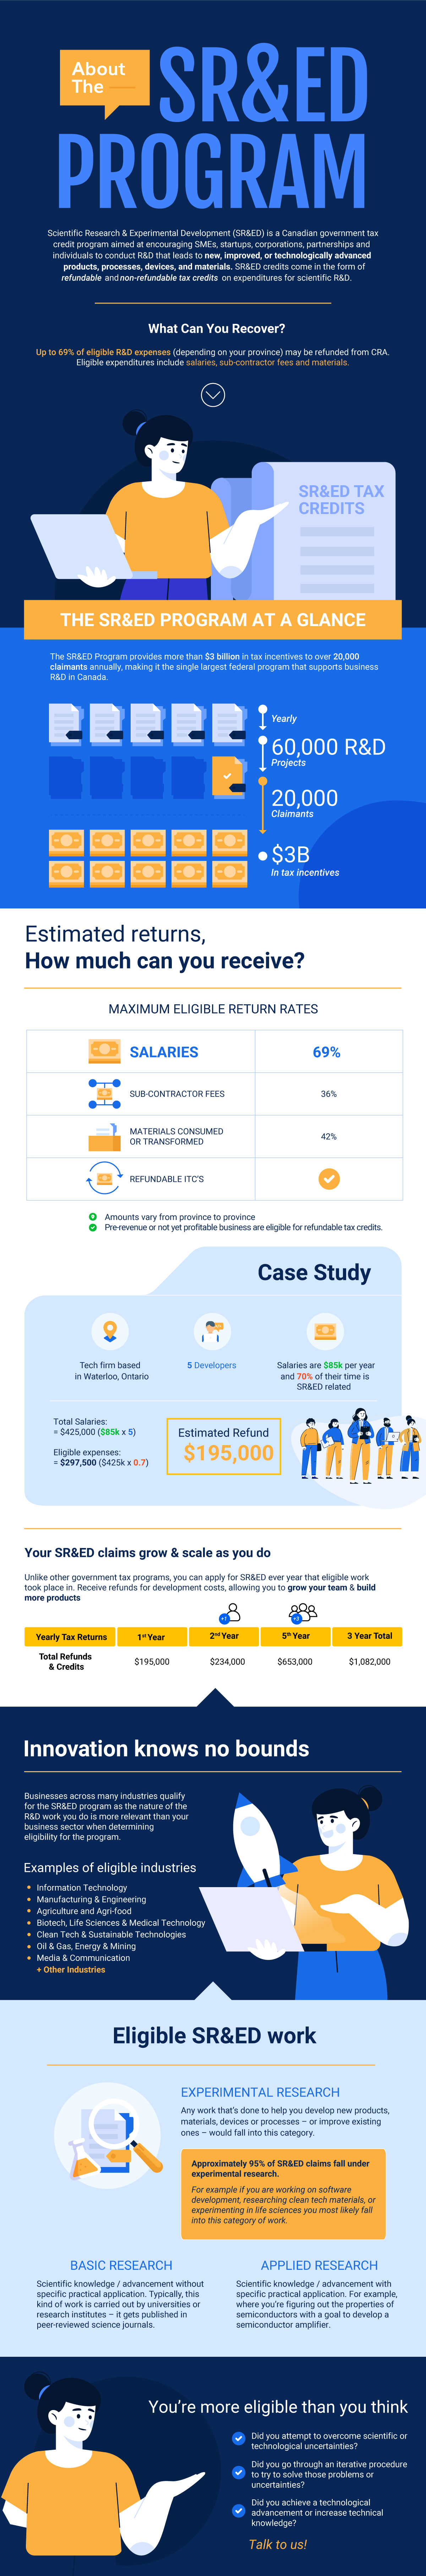 About The SRED Program - Infographic